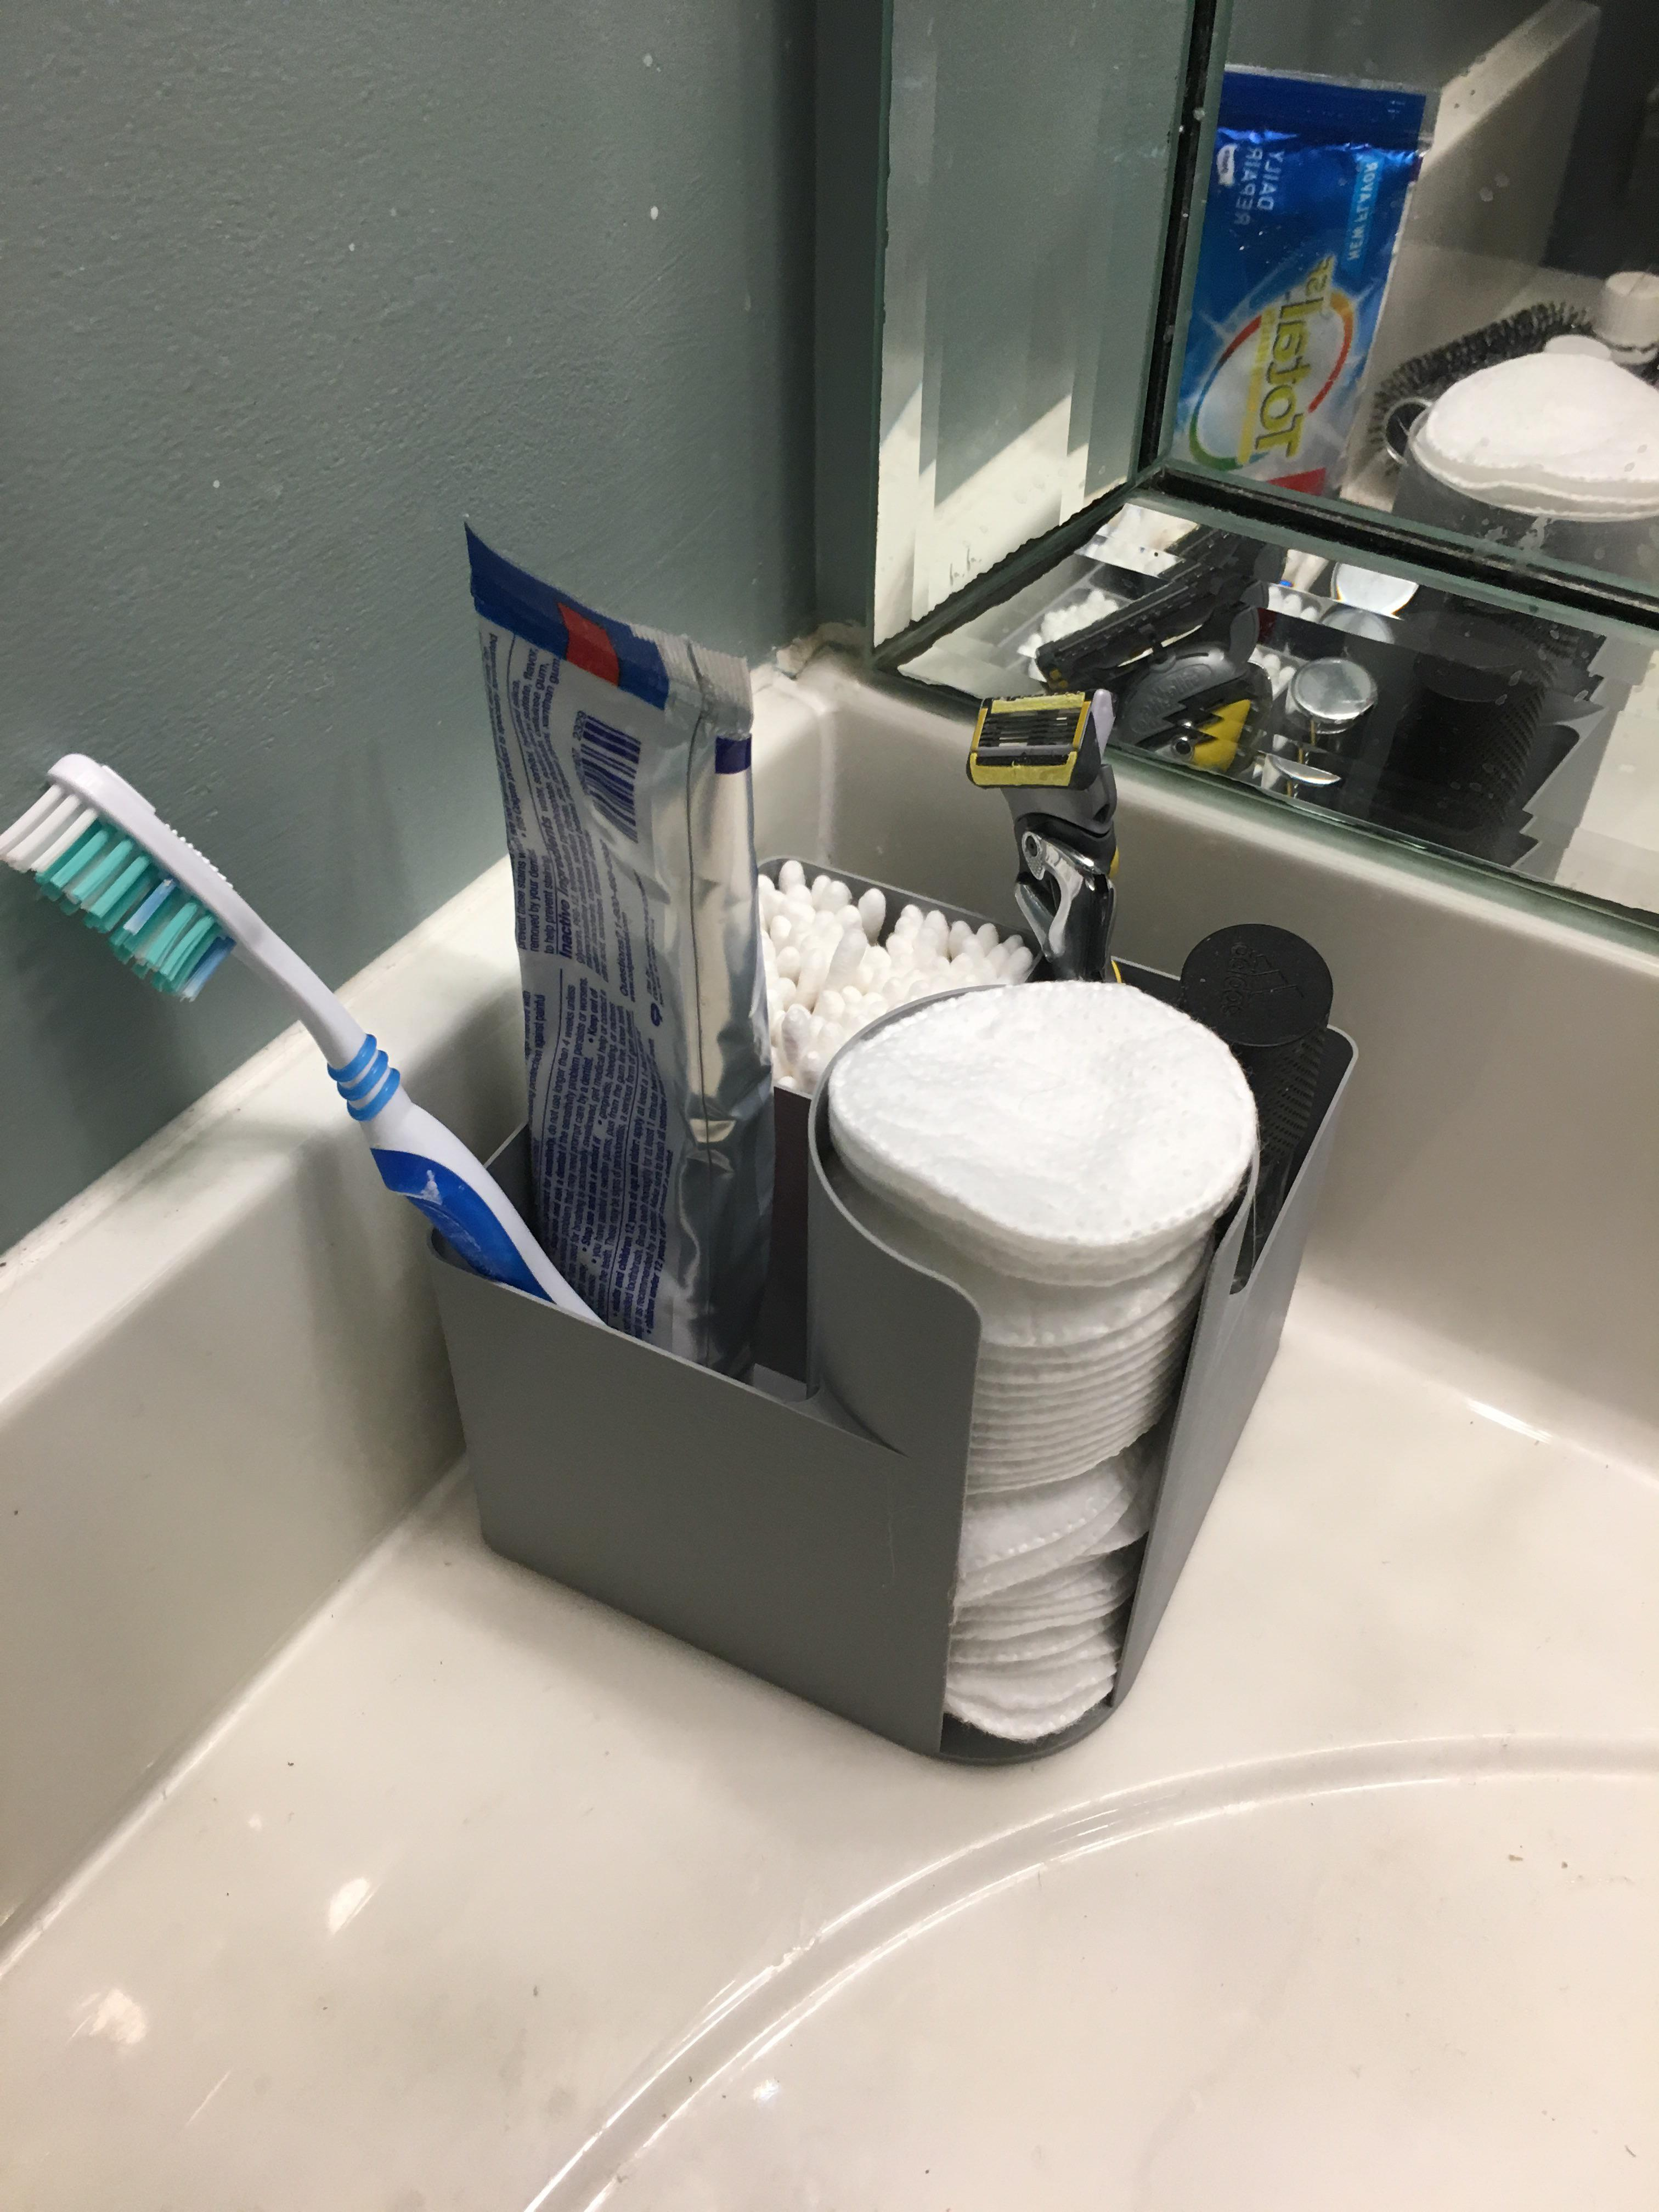 just a bathroom counter organizer but